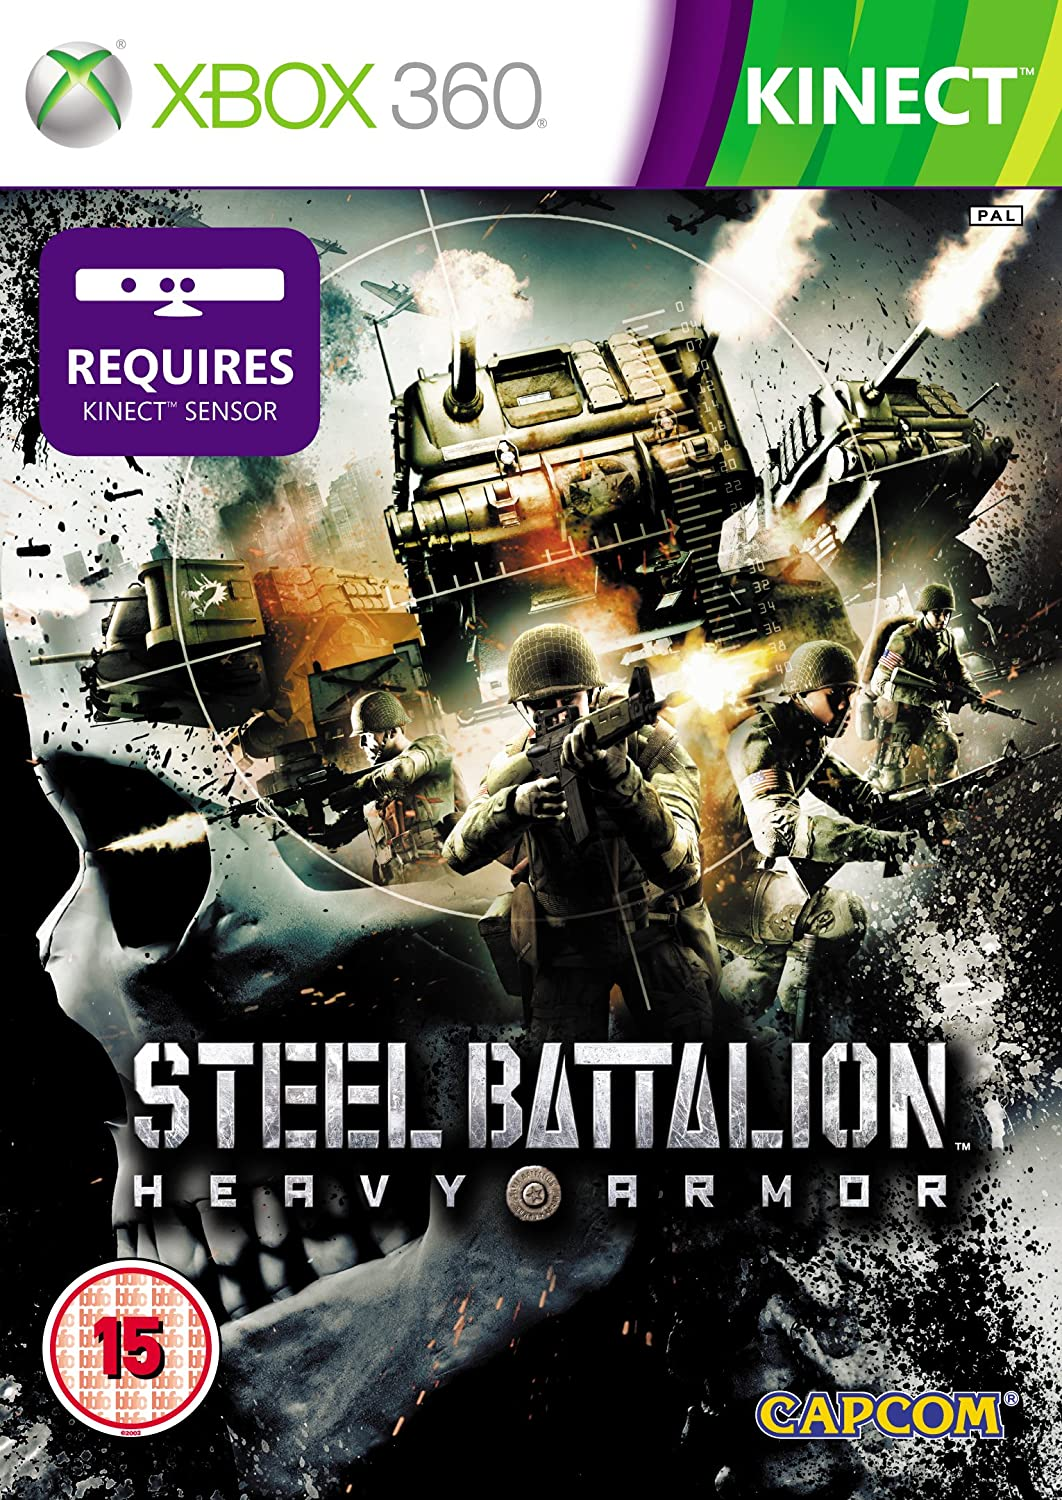 Steel Battalion H.A